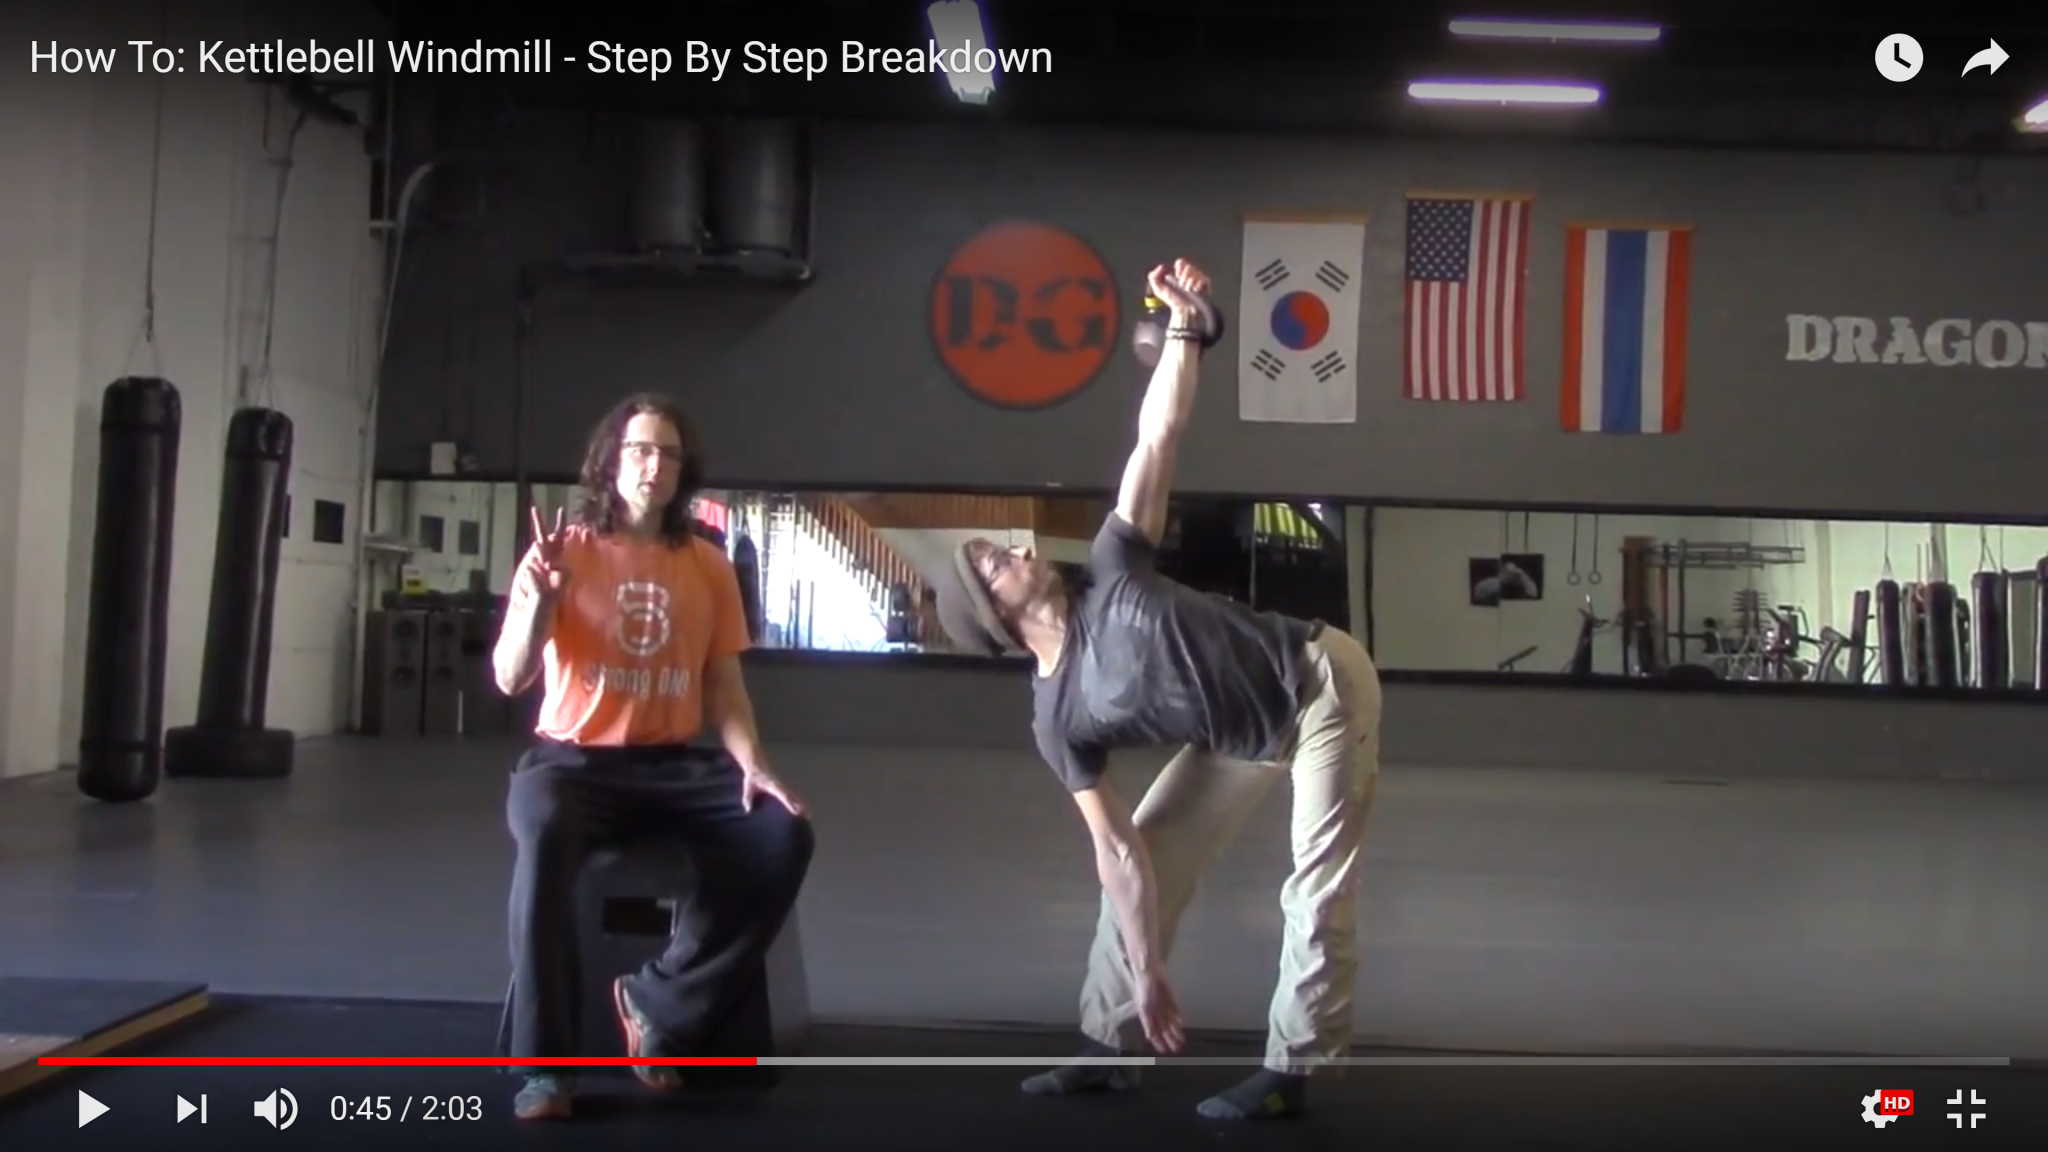 how to kettlebell windmill - step by step breakdown